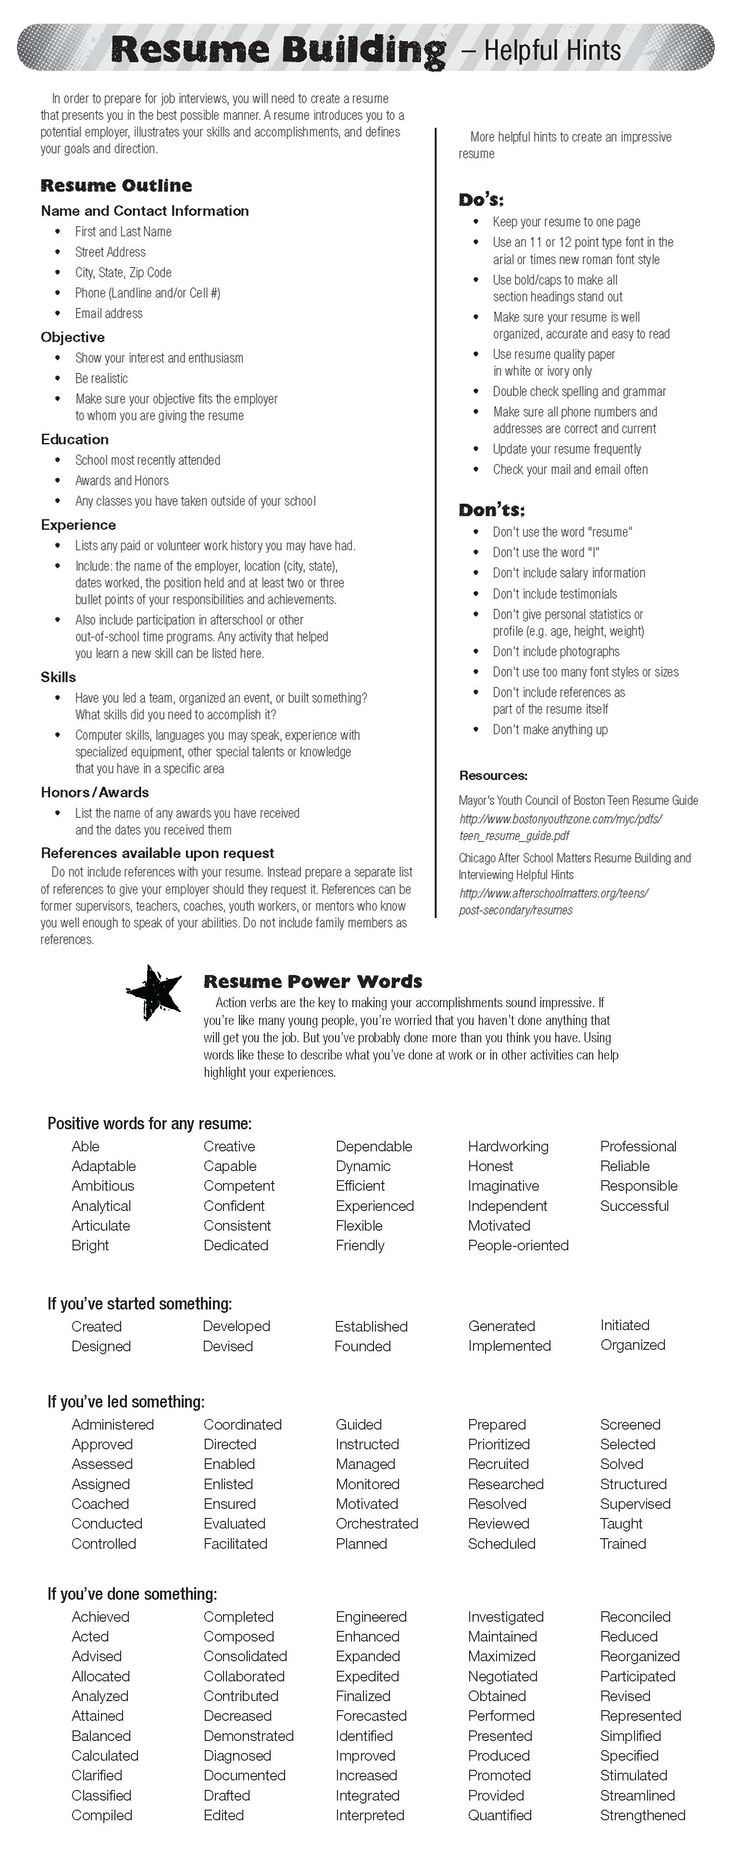 Opposenewapstandardsus  Personable  Ideas About Resume On Pinterest  Cv Format Resume Cv And  With Exciting  Ideas About Resume On Pinterest  Cv Format Resume Cv And Resume Templates With Enchanting Resume For Barista Also Development Director Resume In Addition Experience On A Resume And Sample Resume With References As Well As Microsoft Office On Resume Additionally Star Format Resume From Pinterestcom With Opposenewapstandardsus  Exciting  Ideas About Resume On Pinterest  Cv Format Resume Cv And  With Enchanting  Ideas About Resume On Pinterest  Cv Format Resume Cv And Resume Templates And Personable Resume For Barista Also Development Director Resume In Addition Experience On A Resume From Pinterestcom